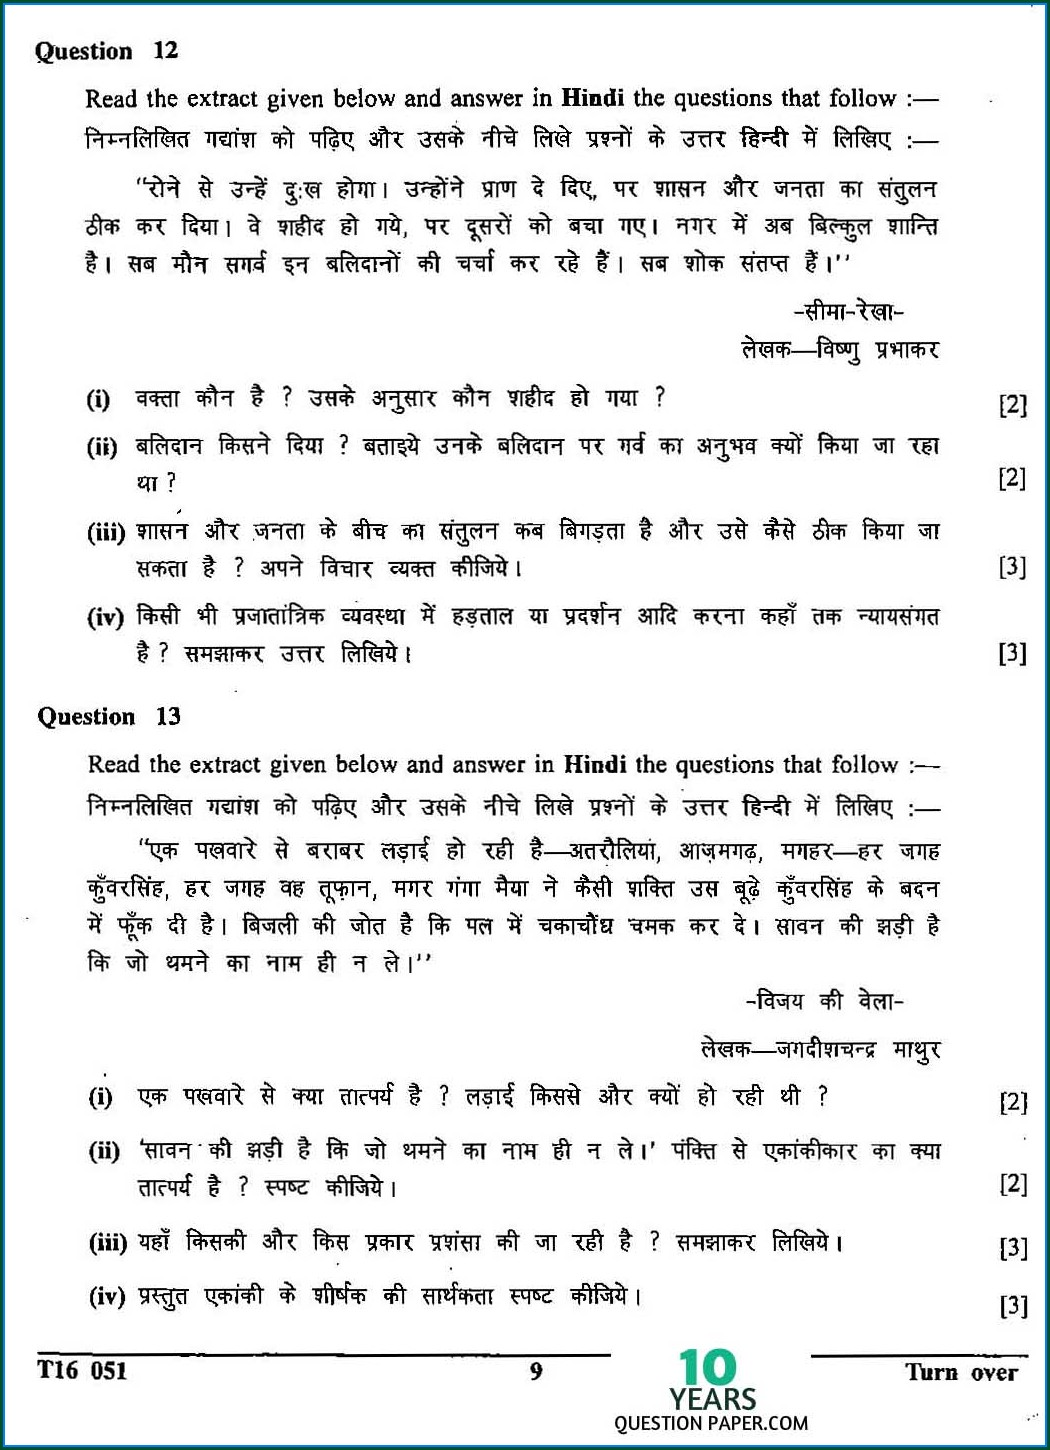 Worksheet Of English Grammar For Class 7